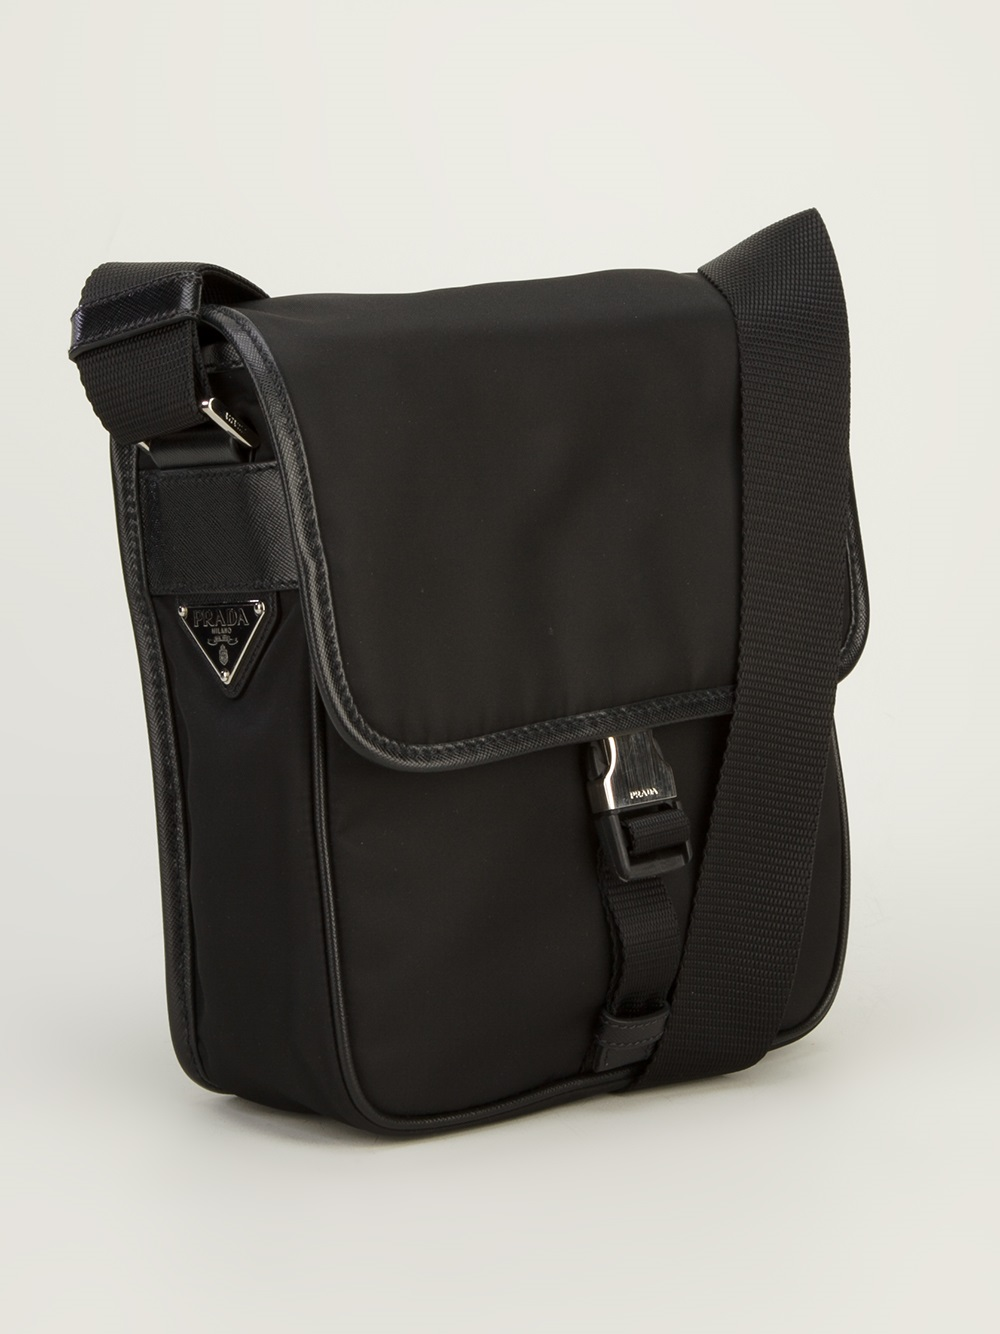 Prada Messenger Bag In Black For Men Lyst